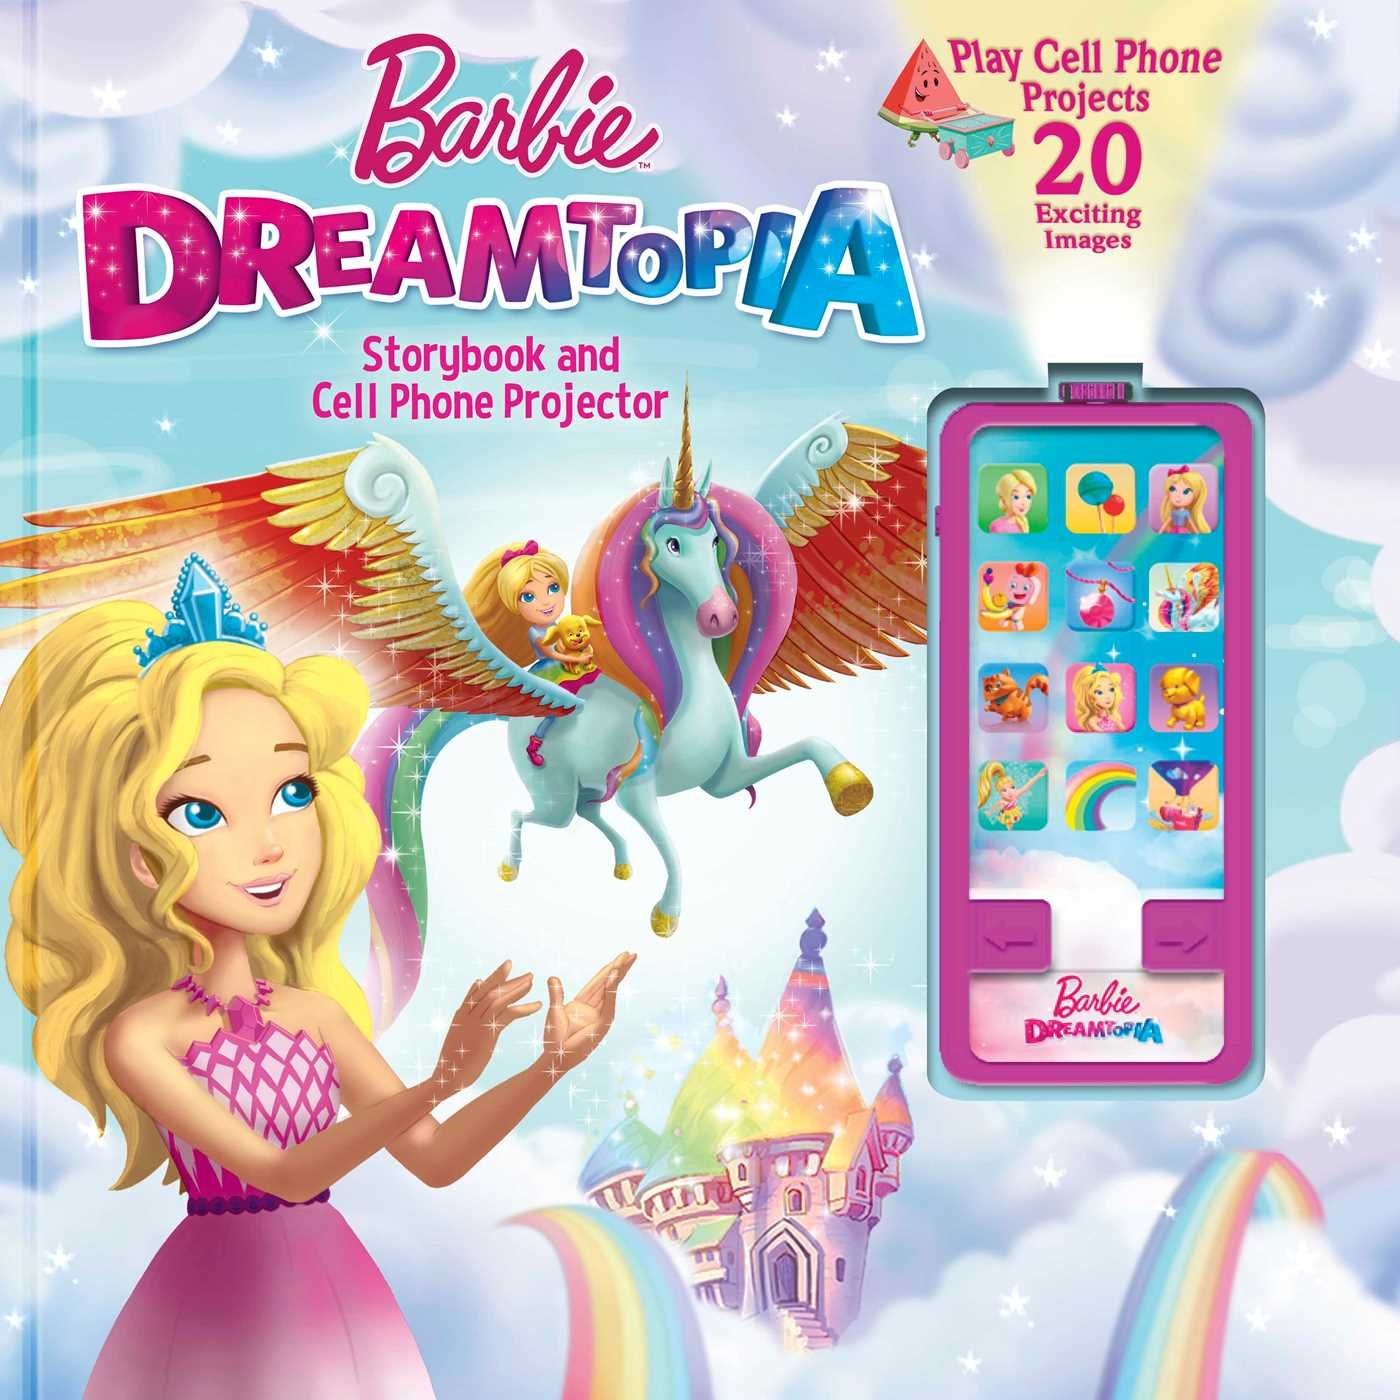 Barbie Dreamtopia: Storybook and Cell Phone Projector (Movie Theater Storybook) 169